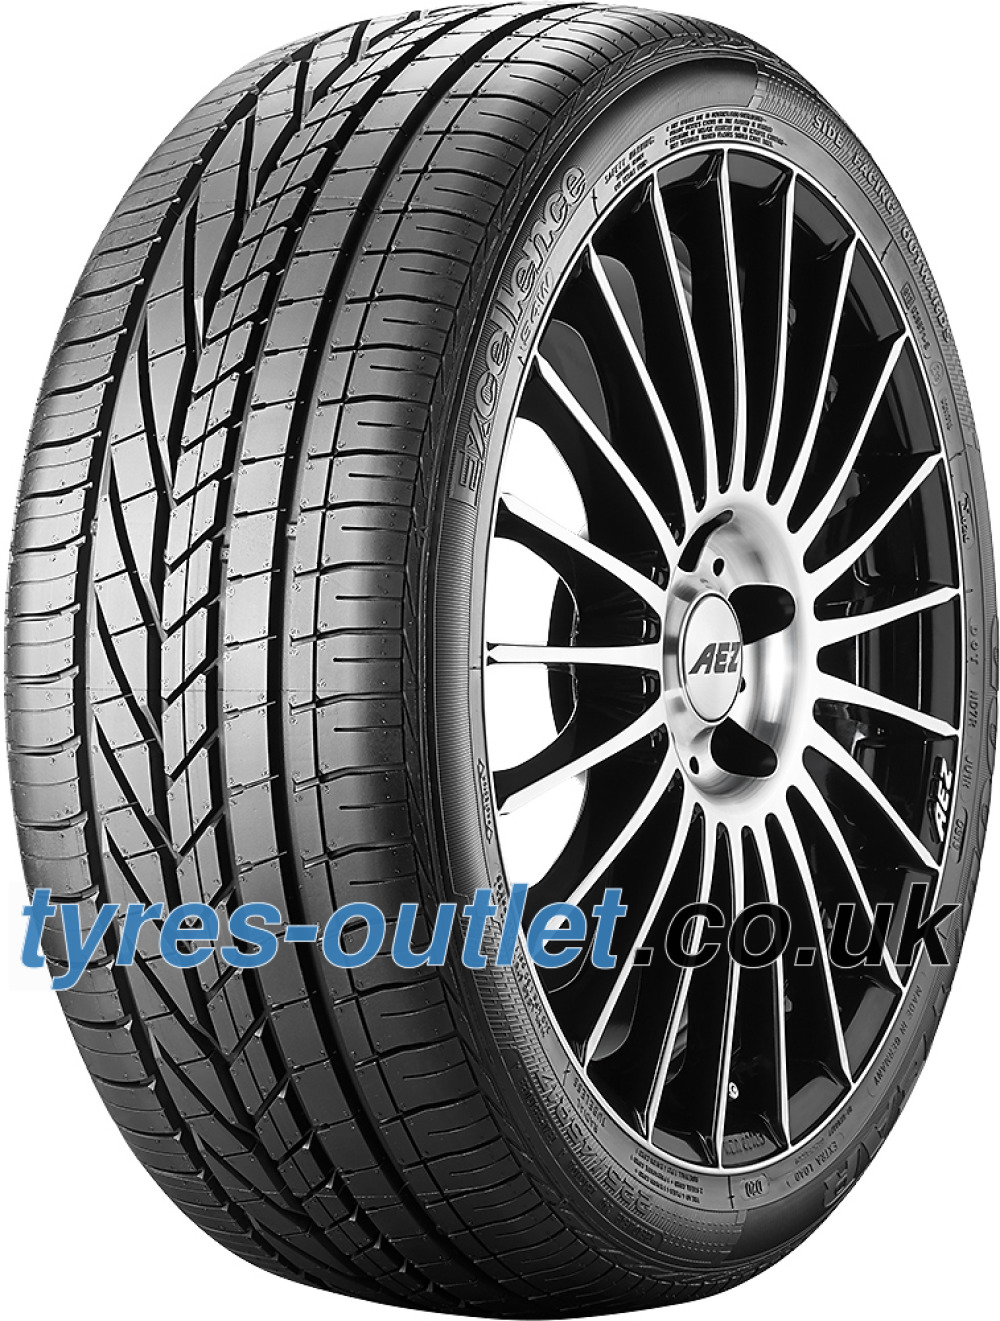 Goodyear Excellence ( 275/40 R20 106Y XL with rim protection (MFS) )